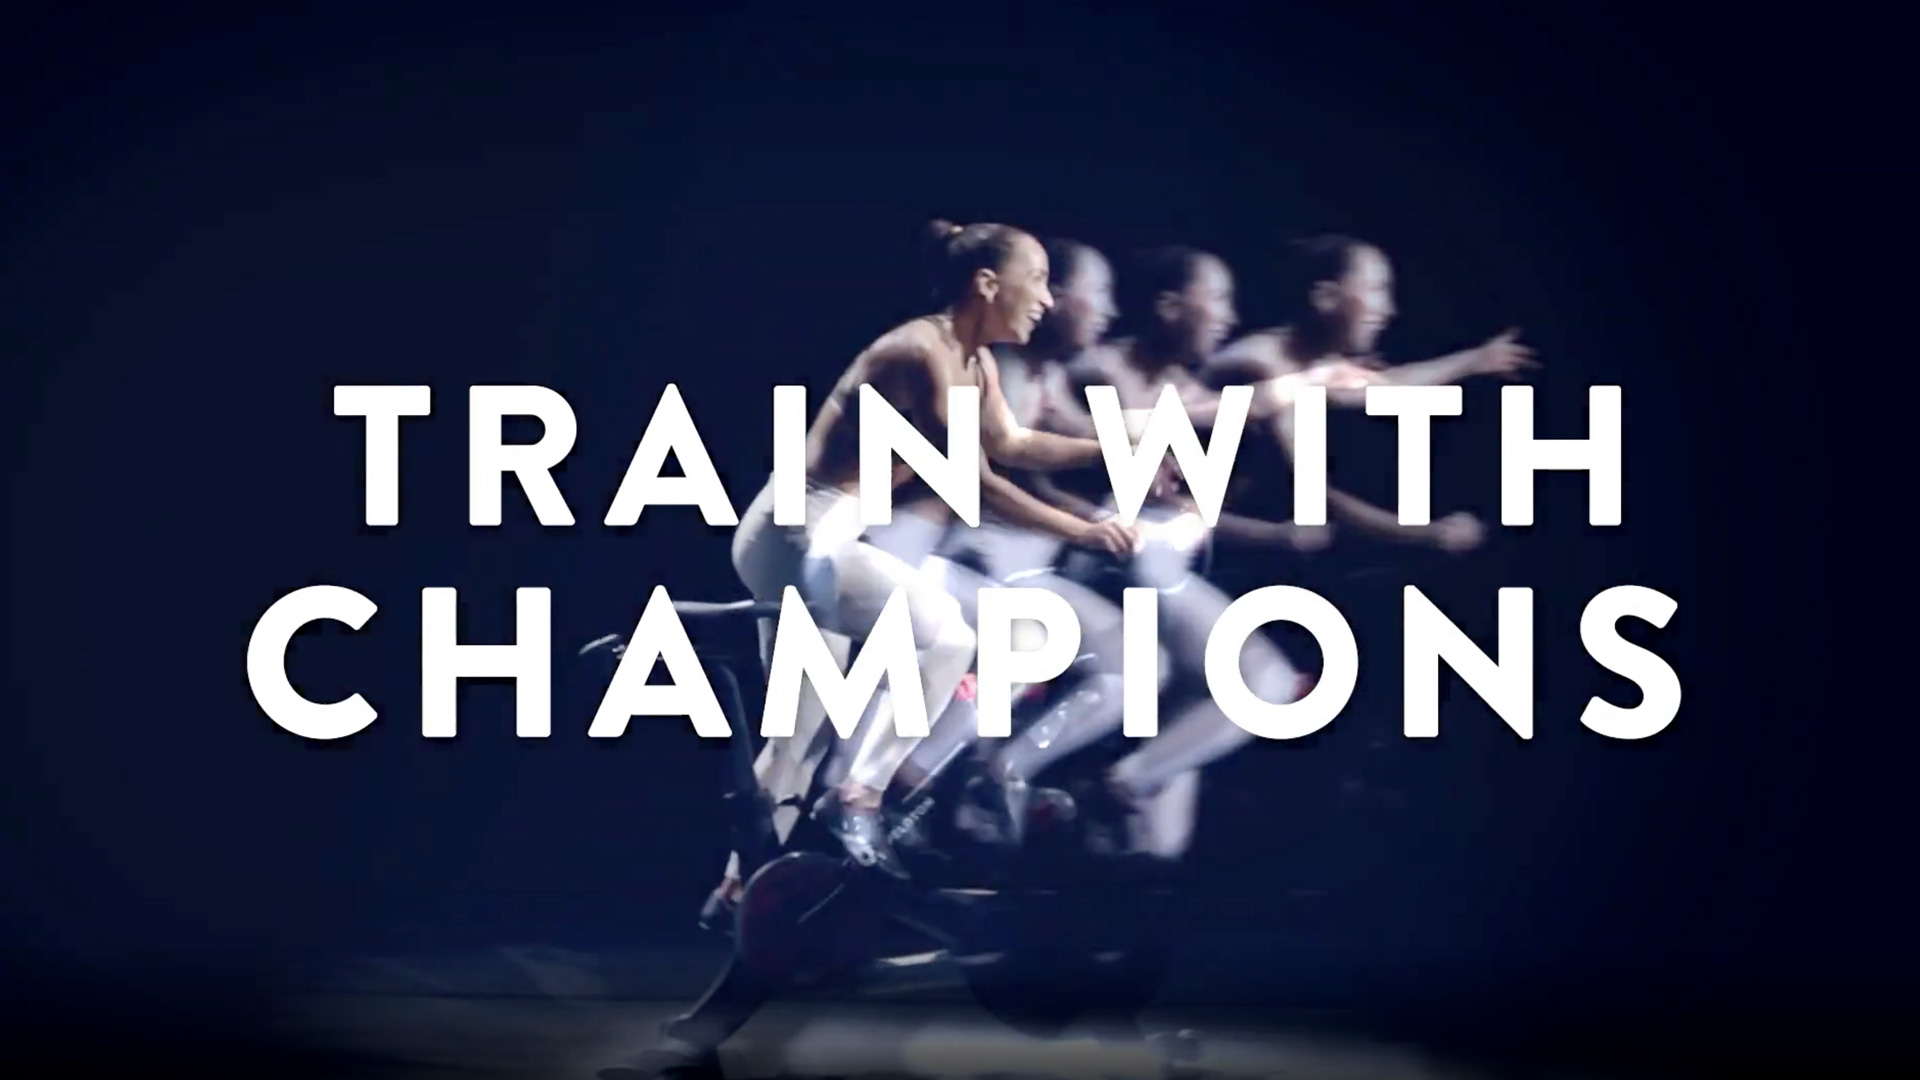 a woman blurred running with Train With Champions over her